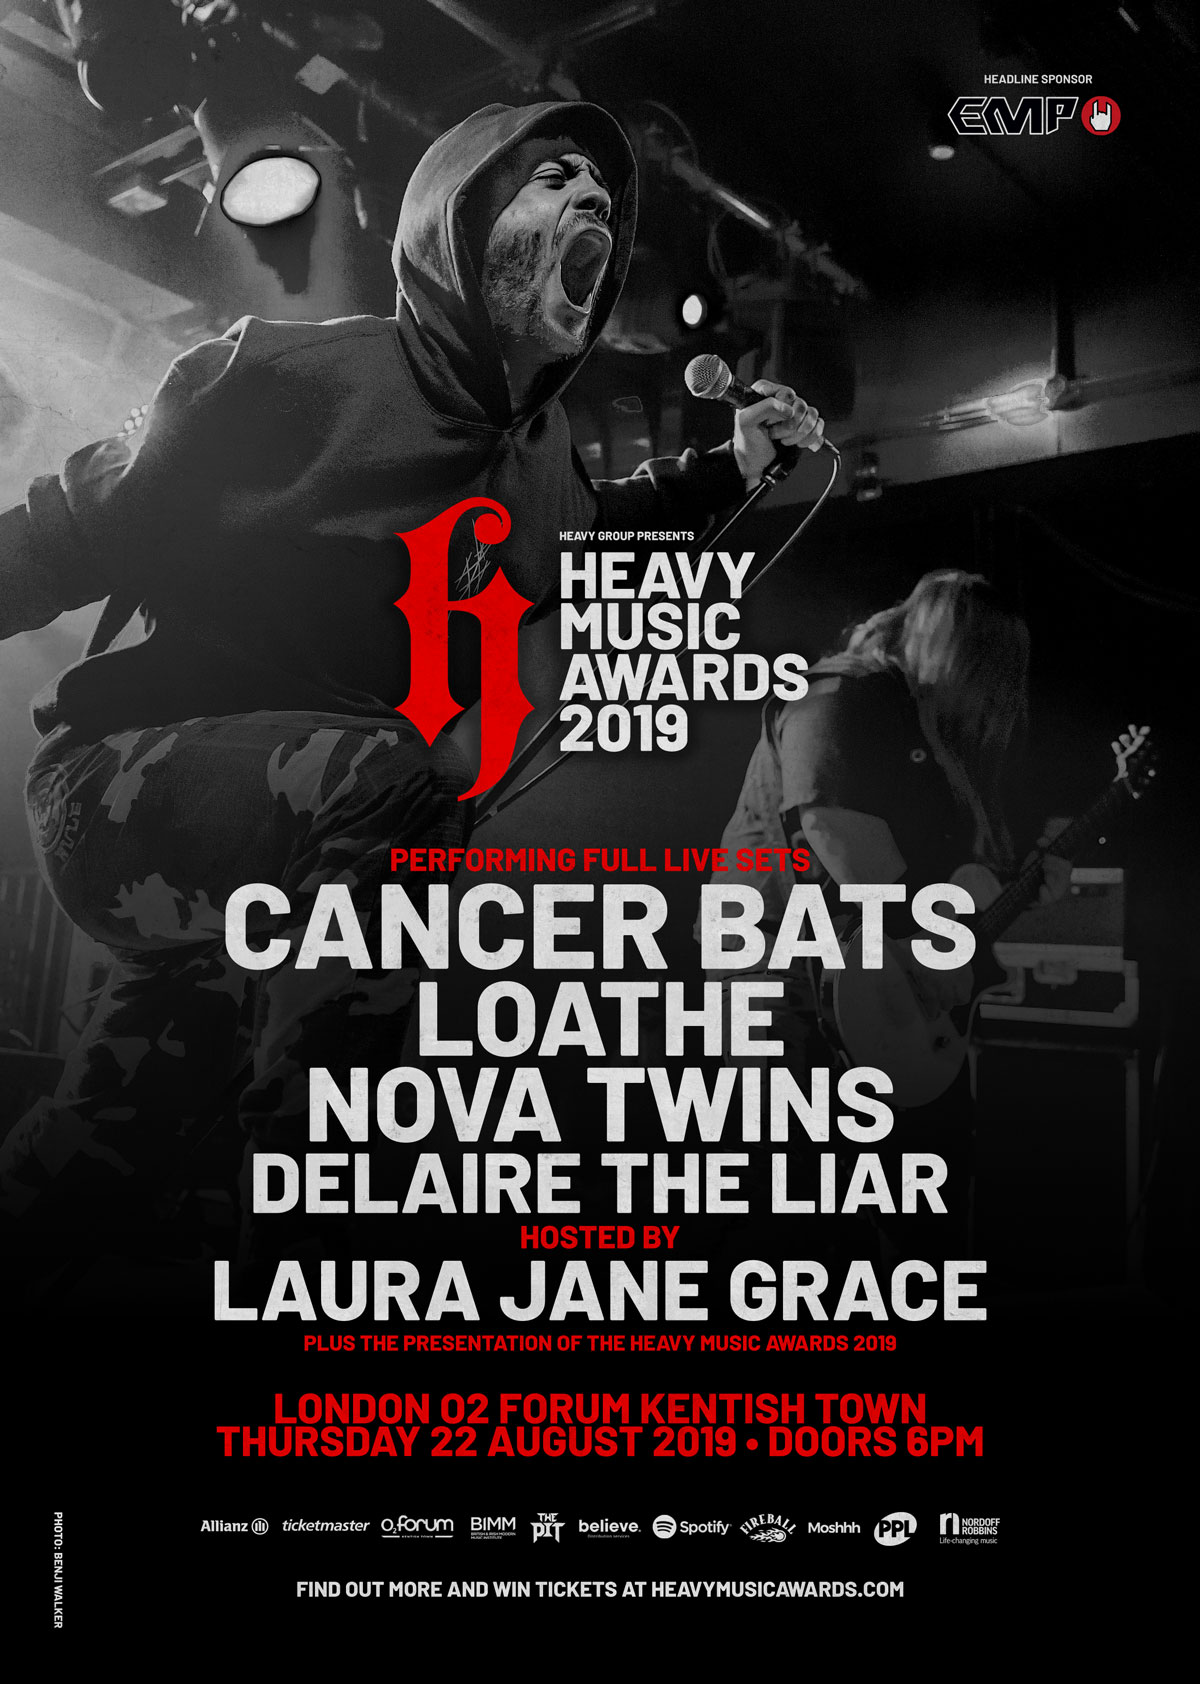 heavy music awards 2019 London O2 forum kentish town